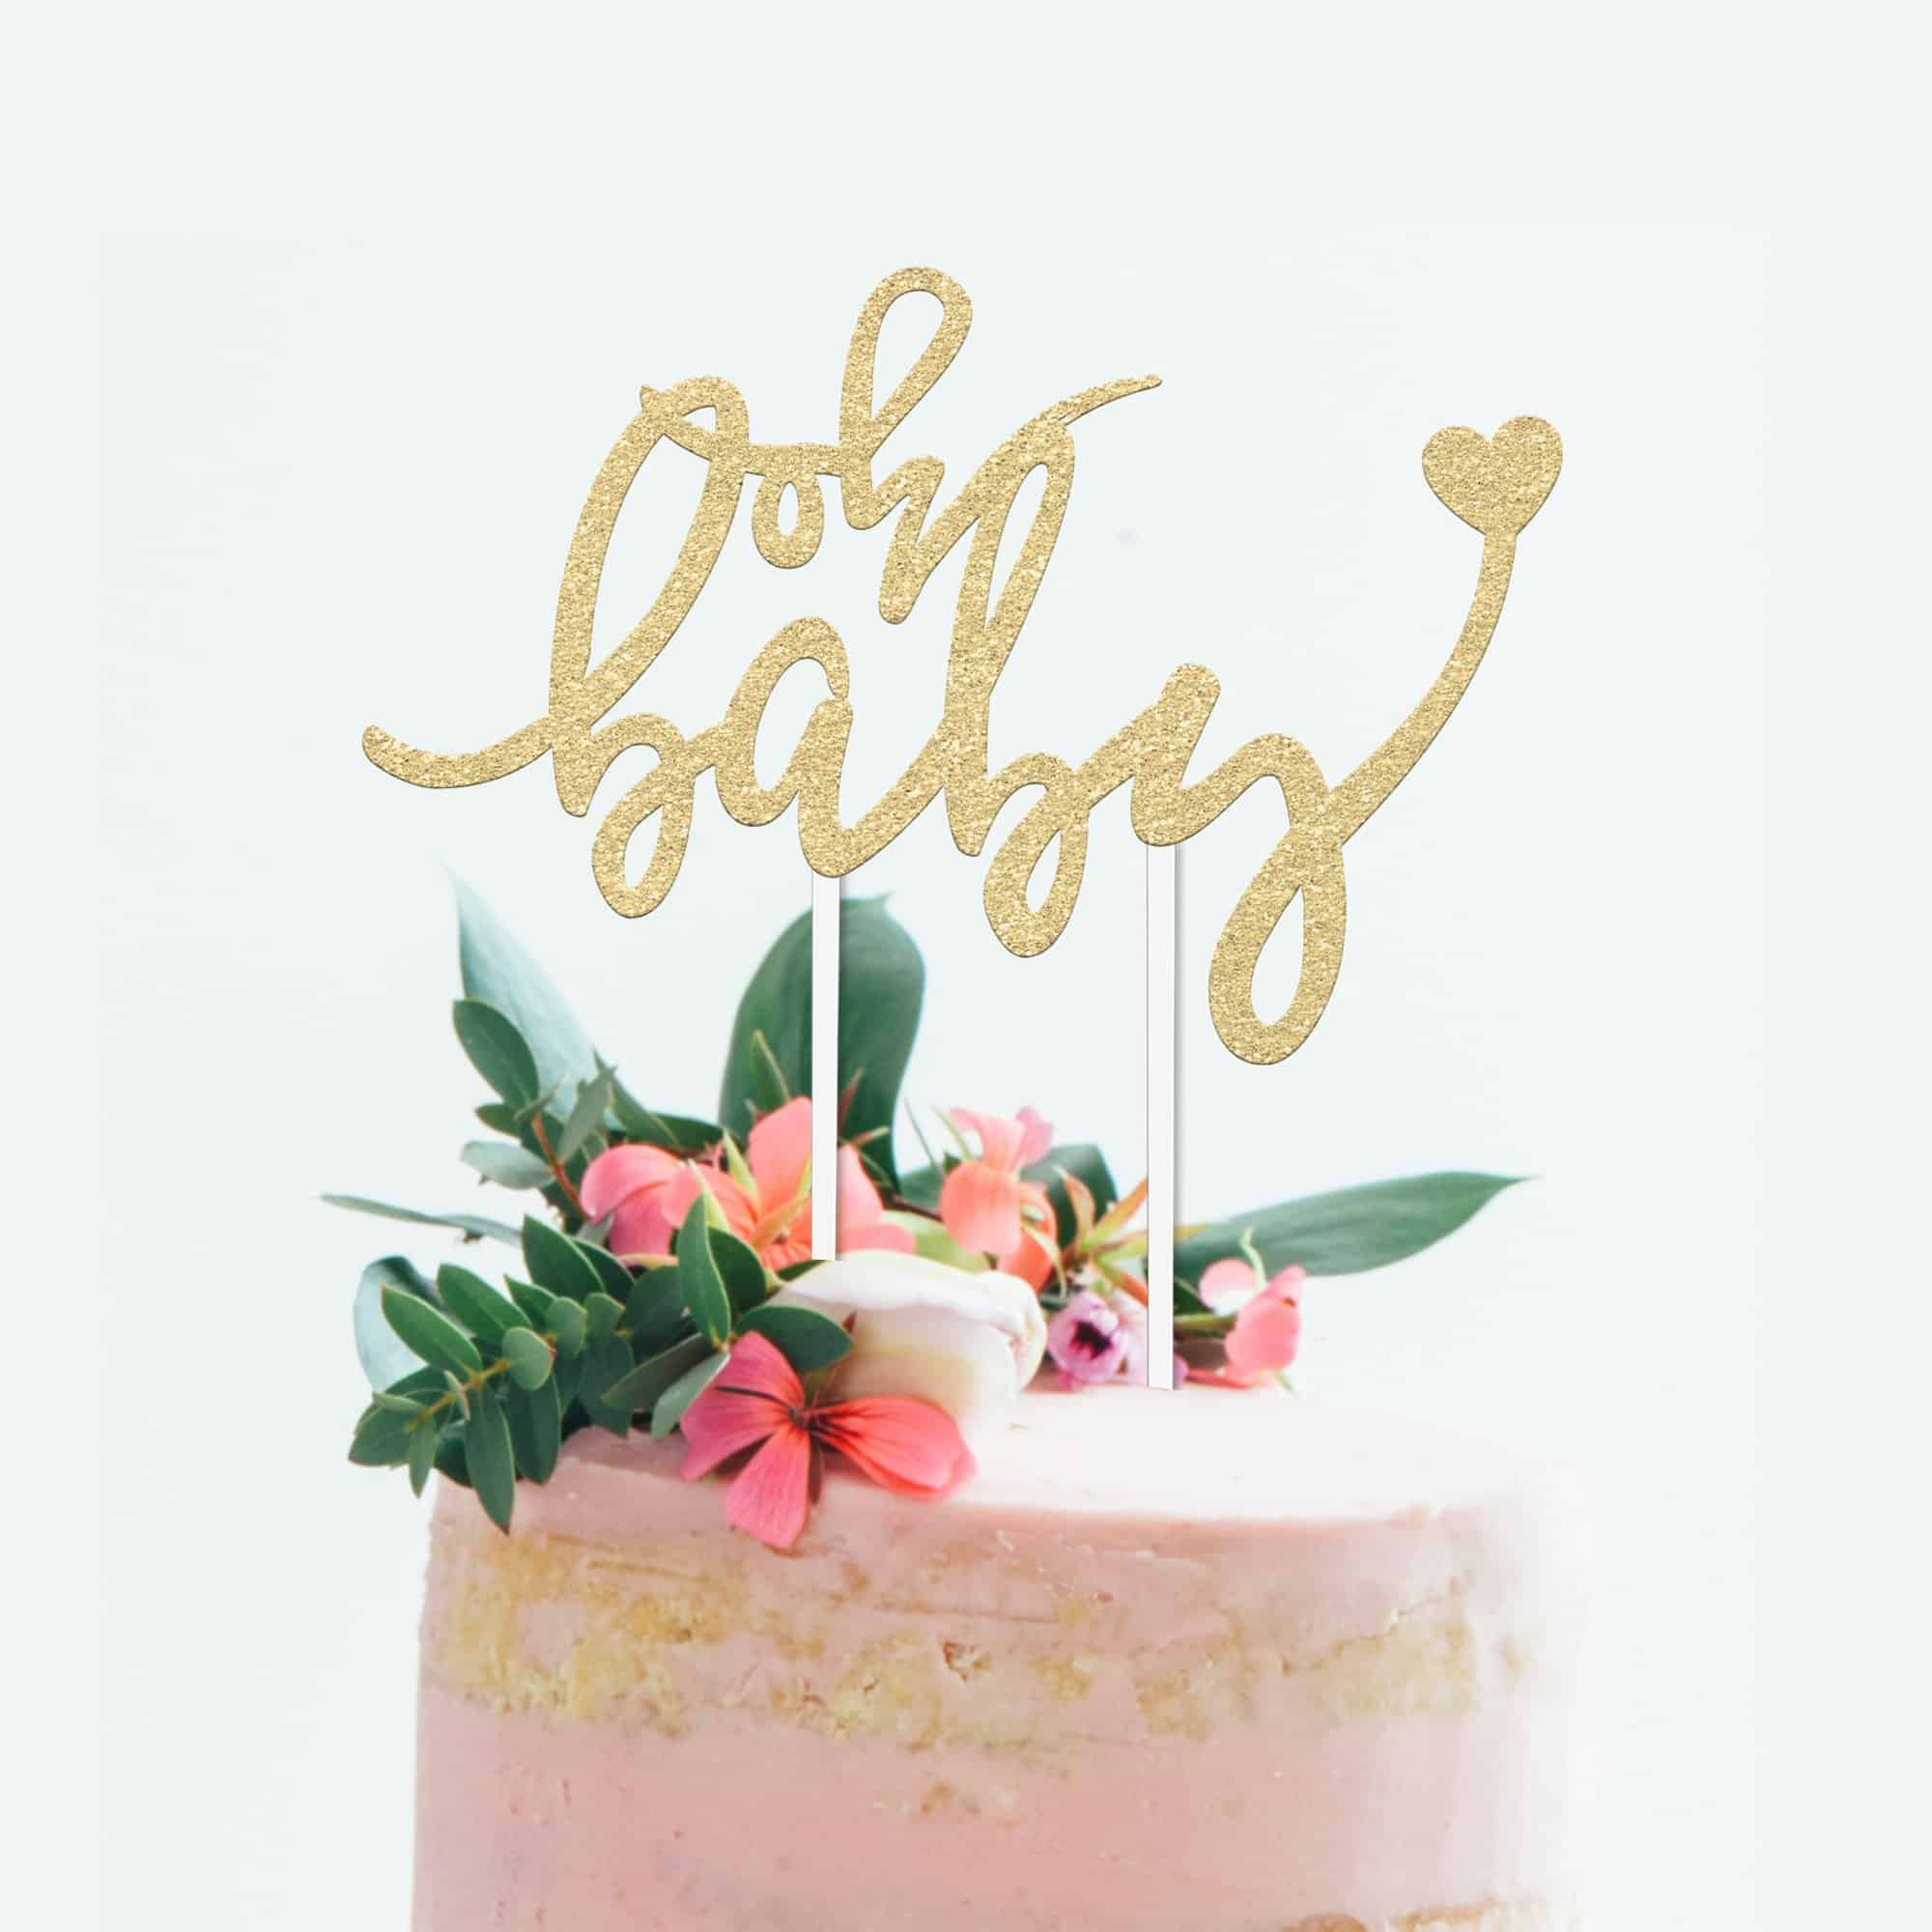 "Baby Shower Cake Topper - ""OH BABY"" - 6.5"" x 4"" Double Sided Gold Glitter Cardstock Topper. Gender Reveal Parties- Food-Safe & Eco-Friendly"